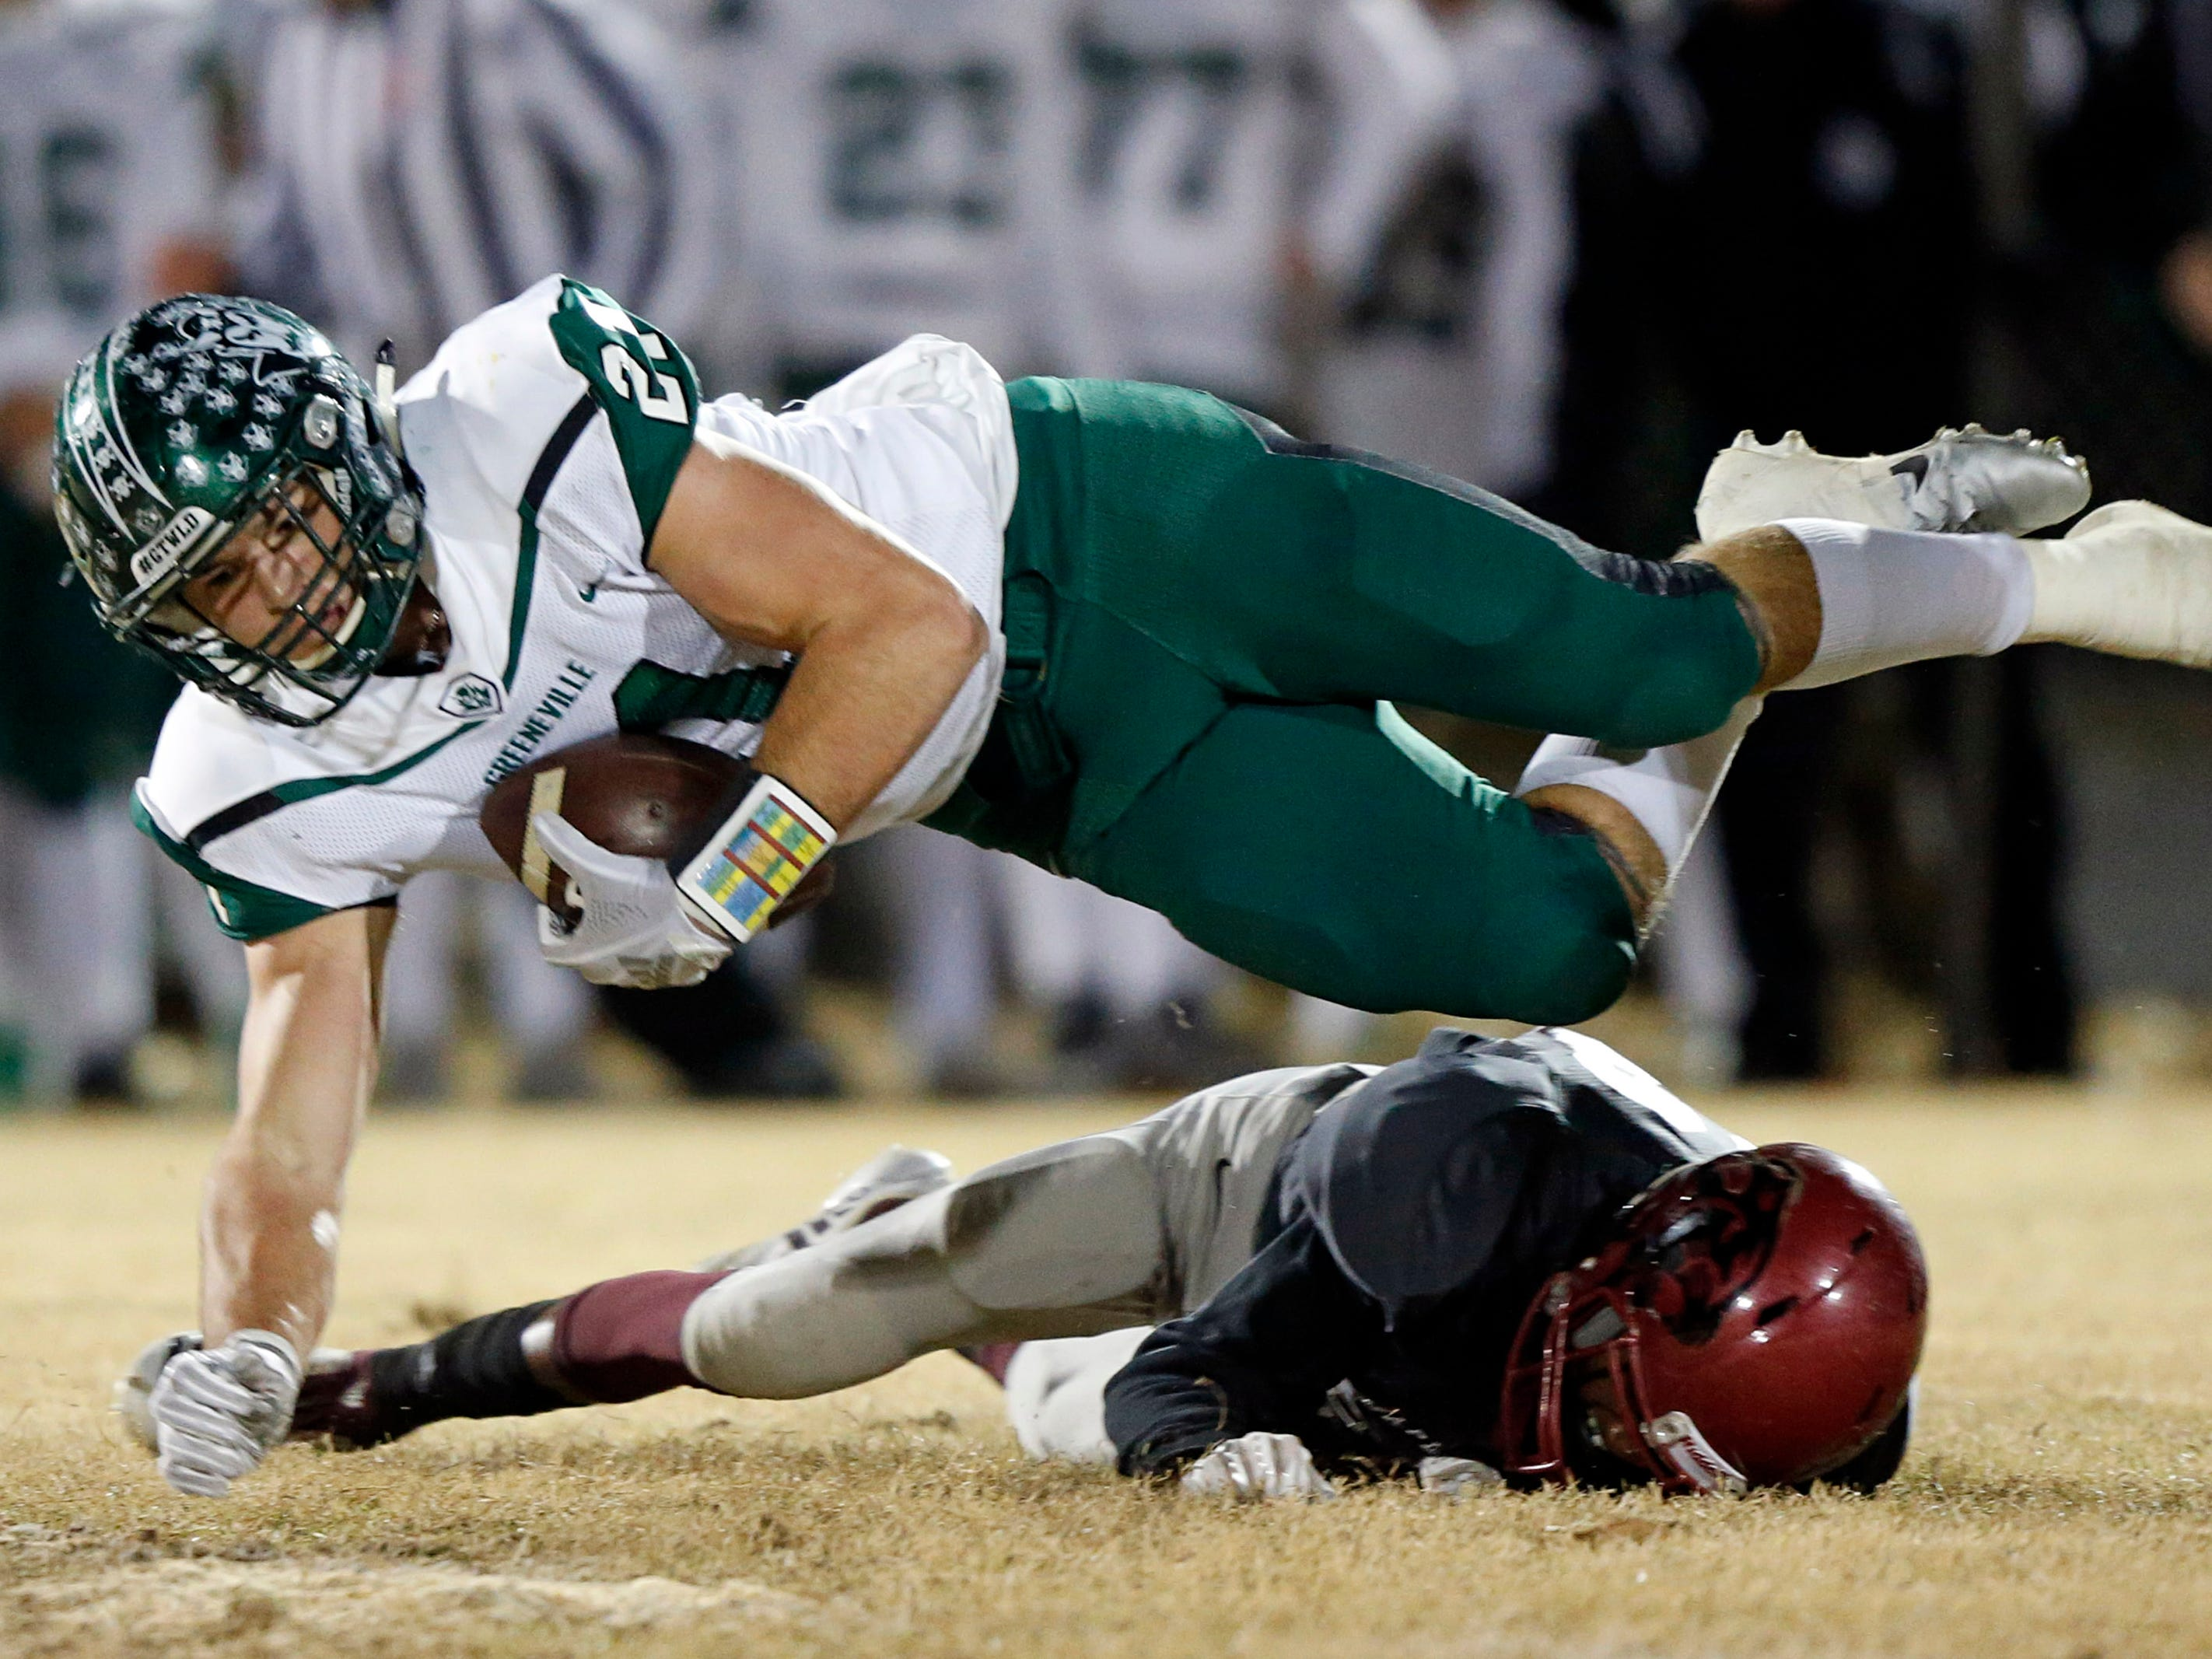 Greeneville's Cameron Hite is tackled by Maplewood's Ricky Harvell during their game Friday, Nov. 23, 2018, in Nashville, TN.